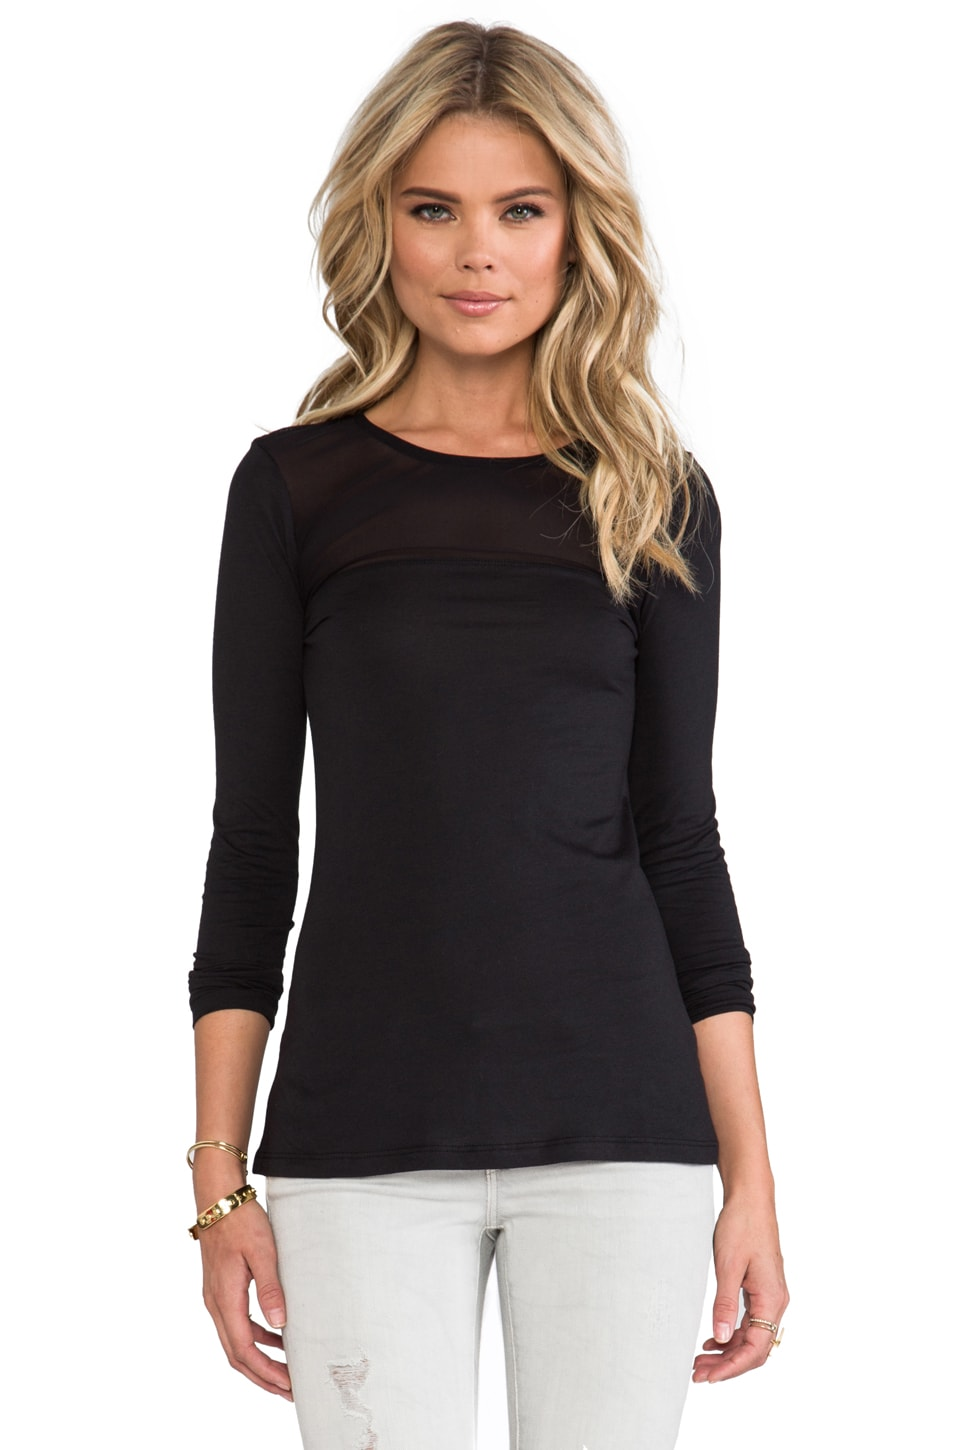 Bobi Mesh Long Sleeve Tee in Black